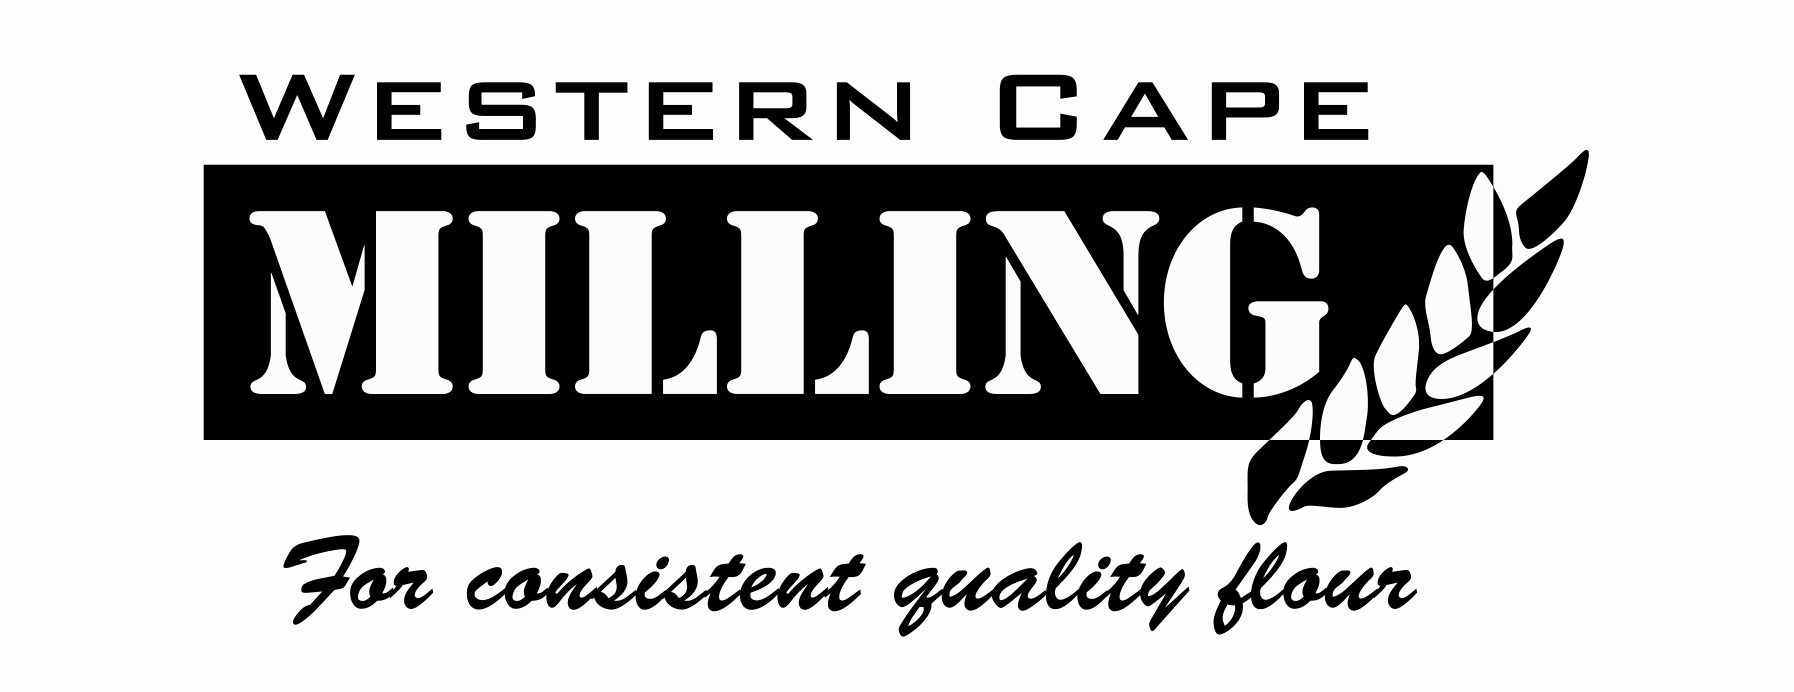 Western Cape Milling - GMO-free Wheat - Quality